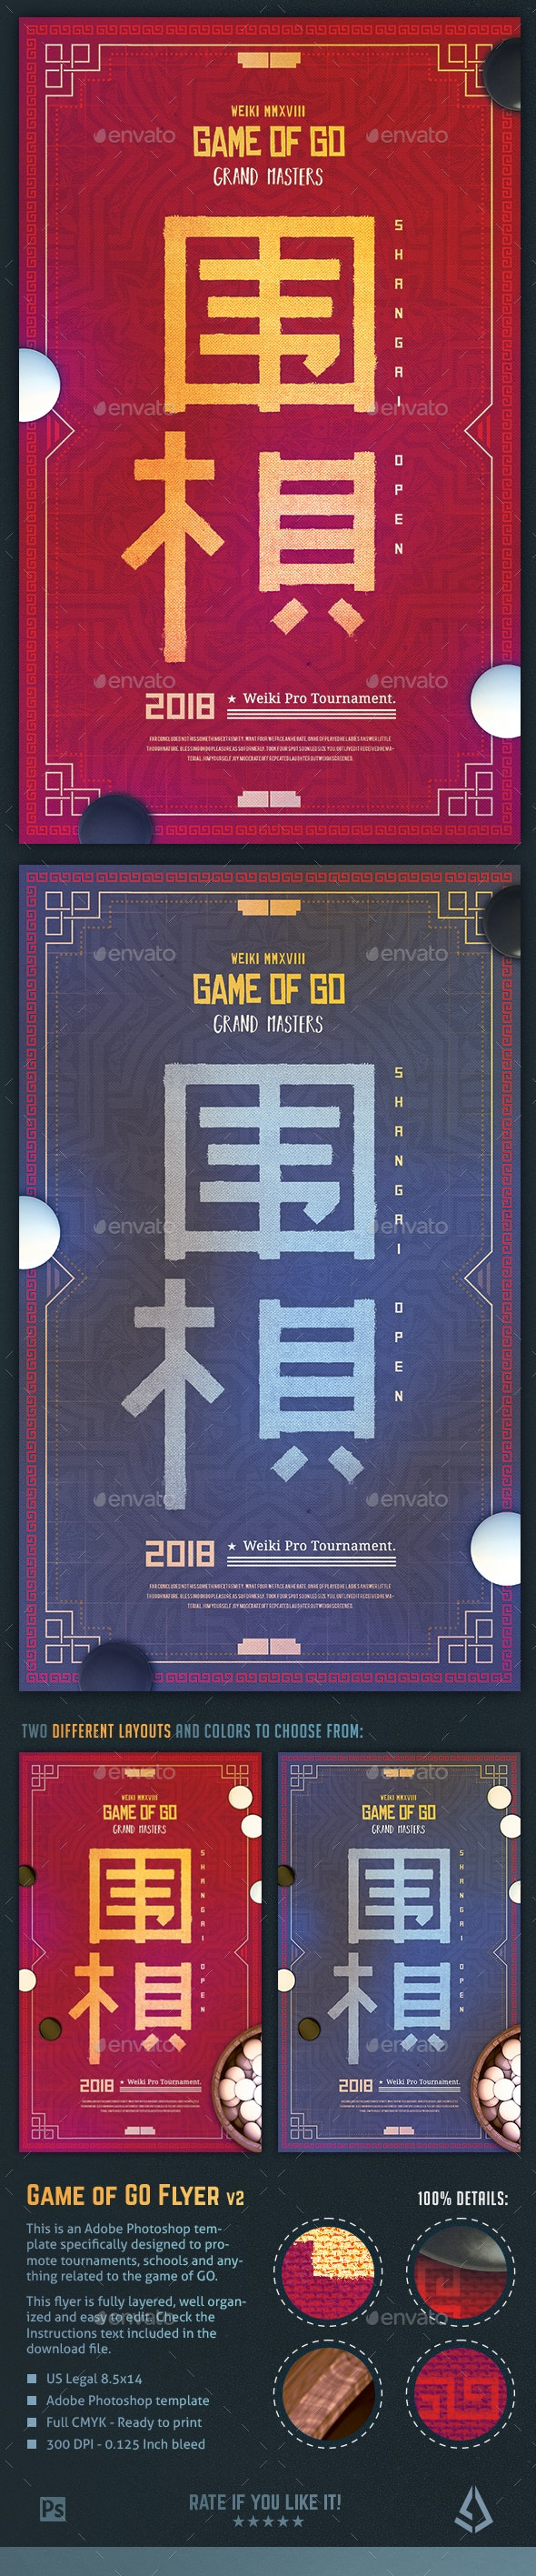 Game of Go Flyer Weiki Baduk Poster Template - Miscellaneous Events